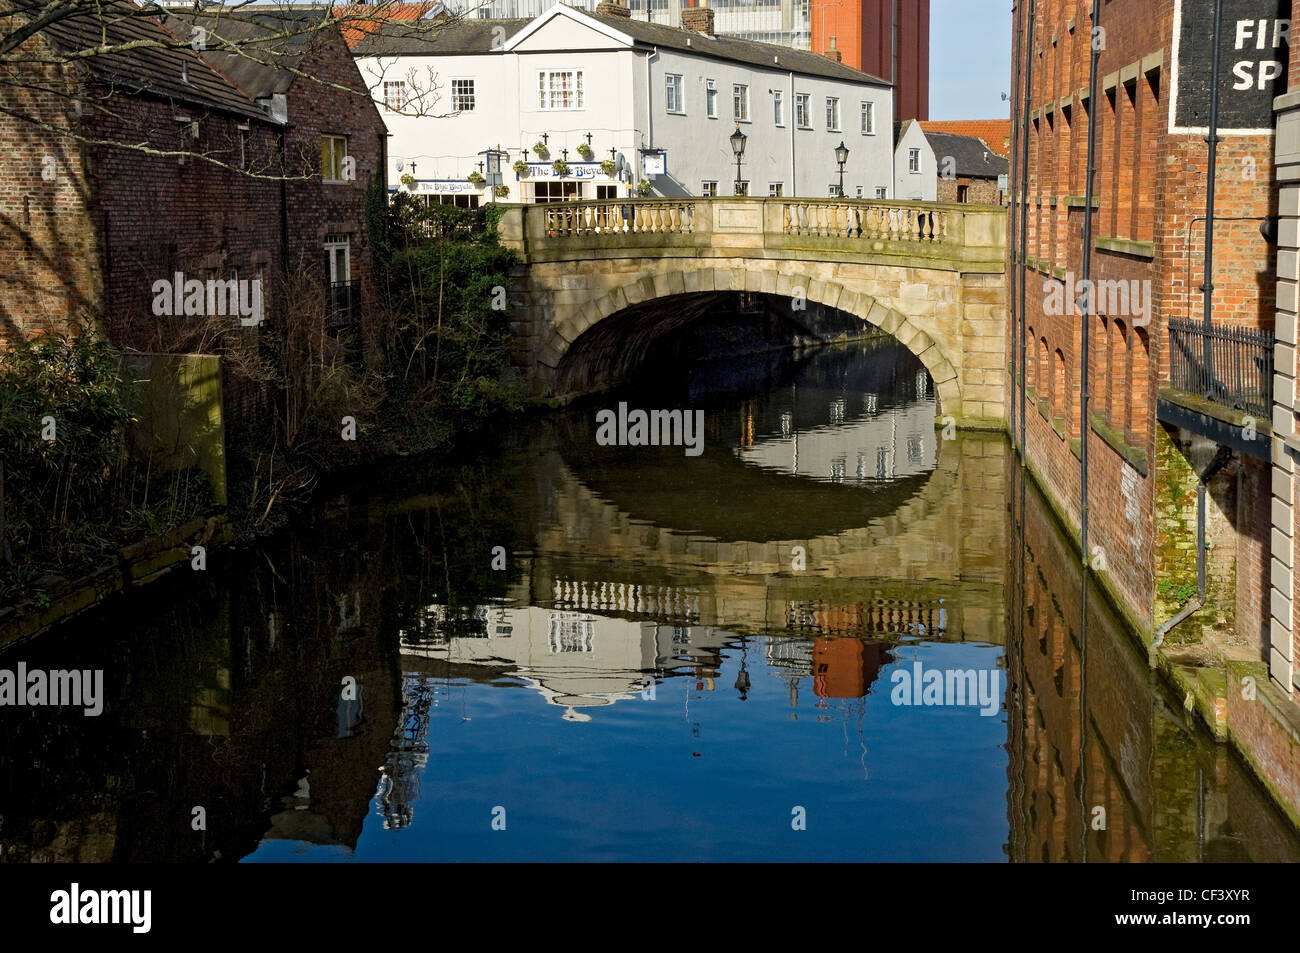 Foss Bridge, a 19th century Georgian gritstone bridge over the River Foss. - Stock Image